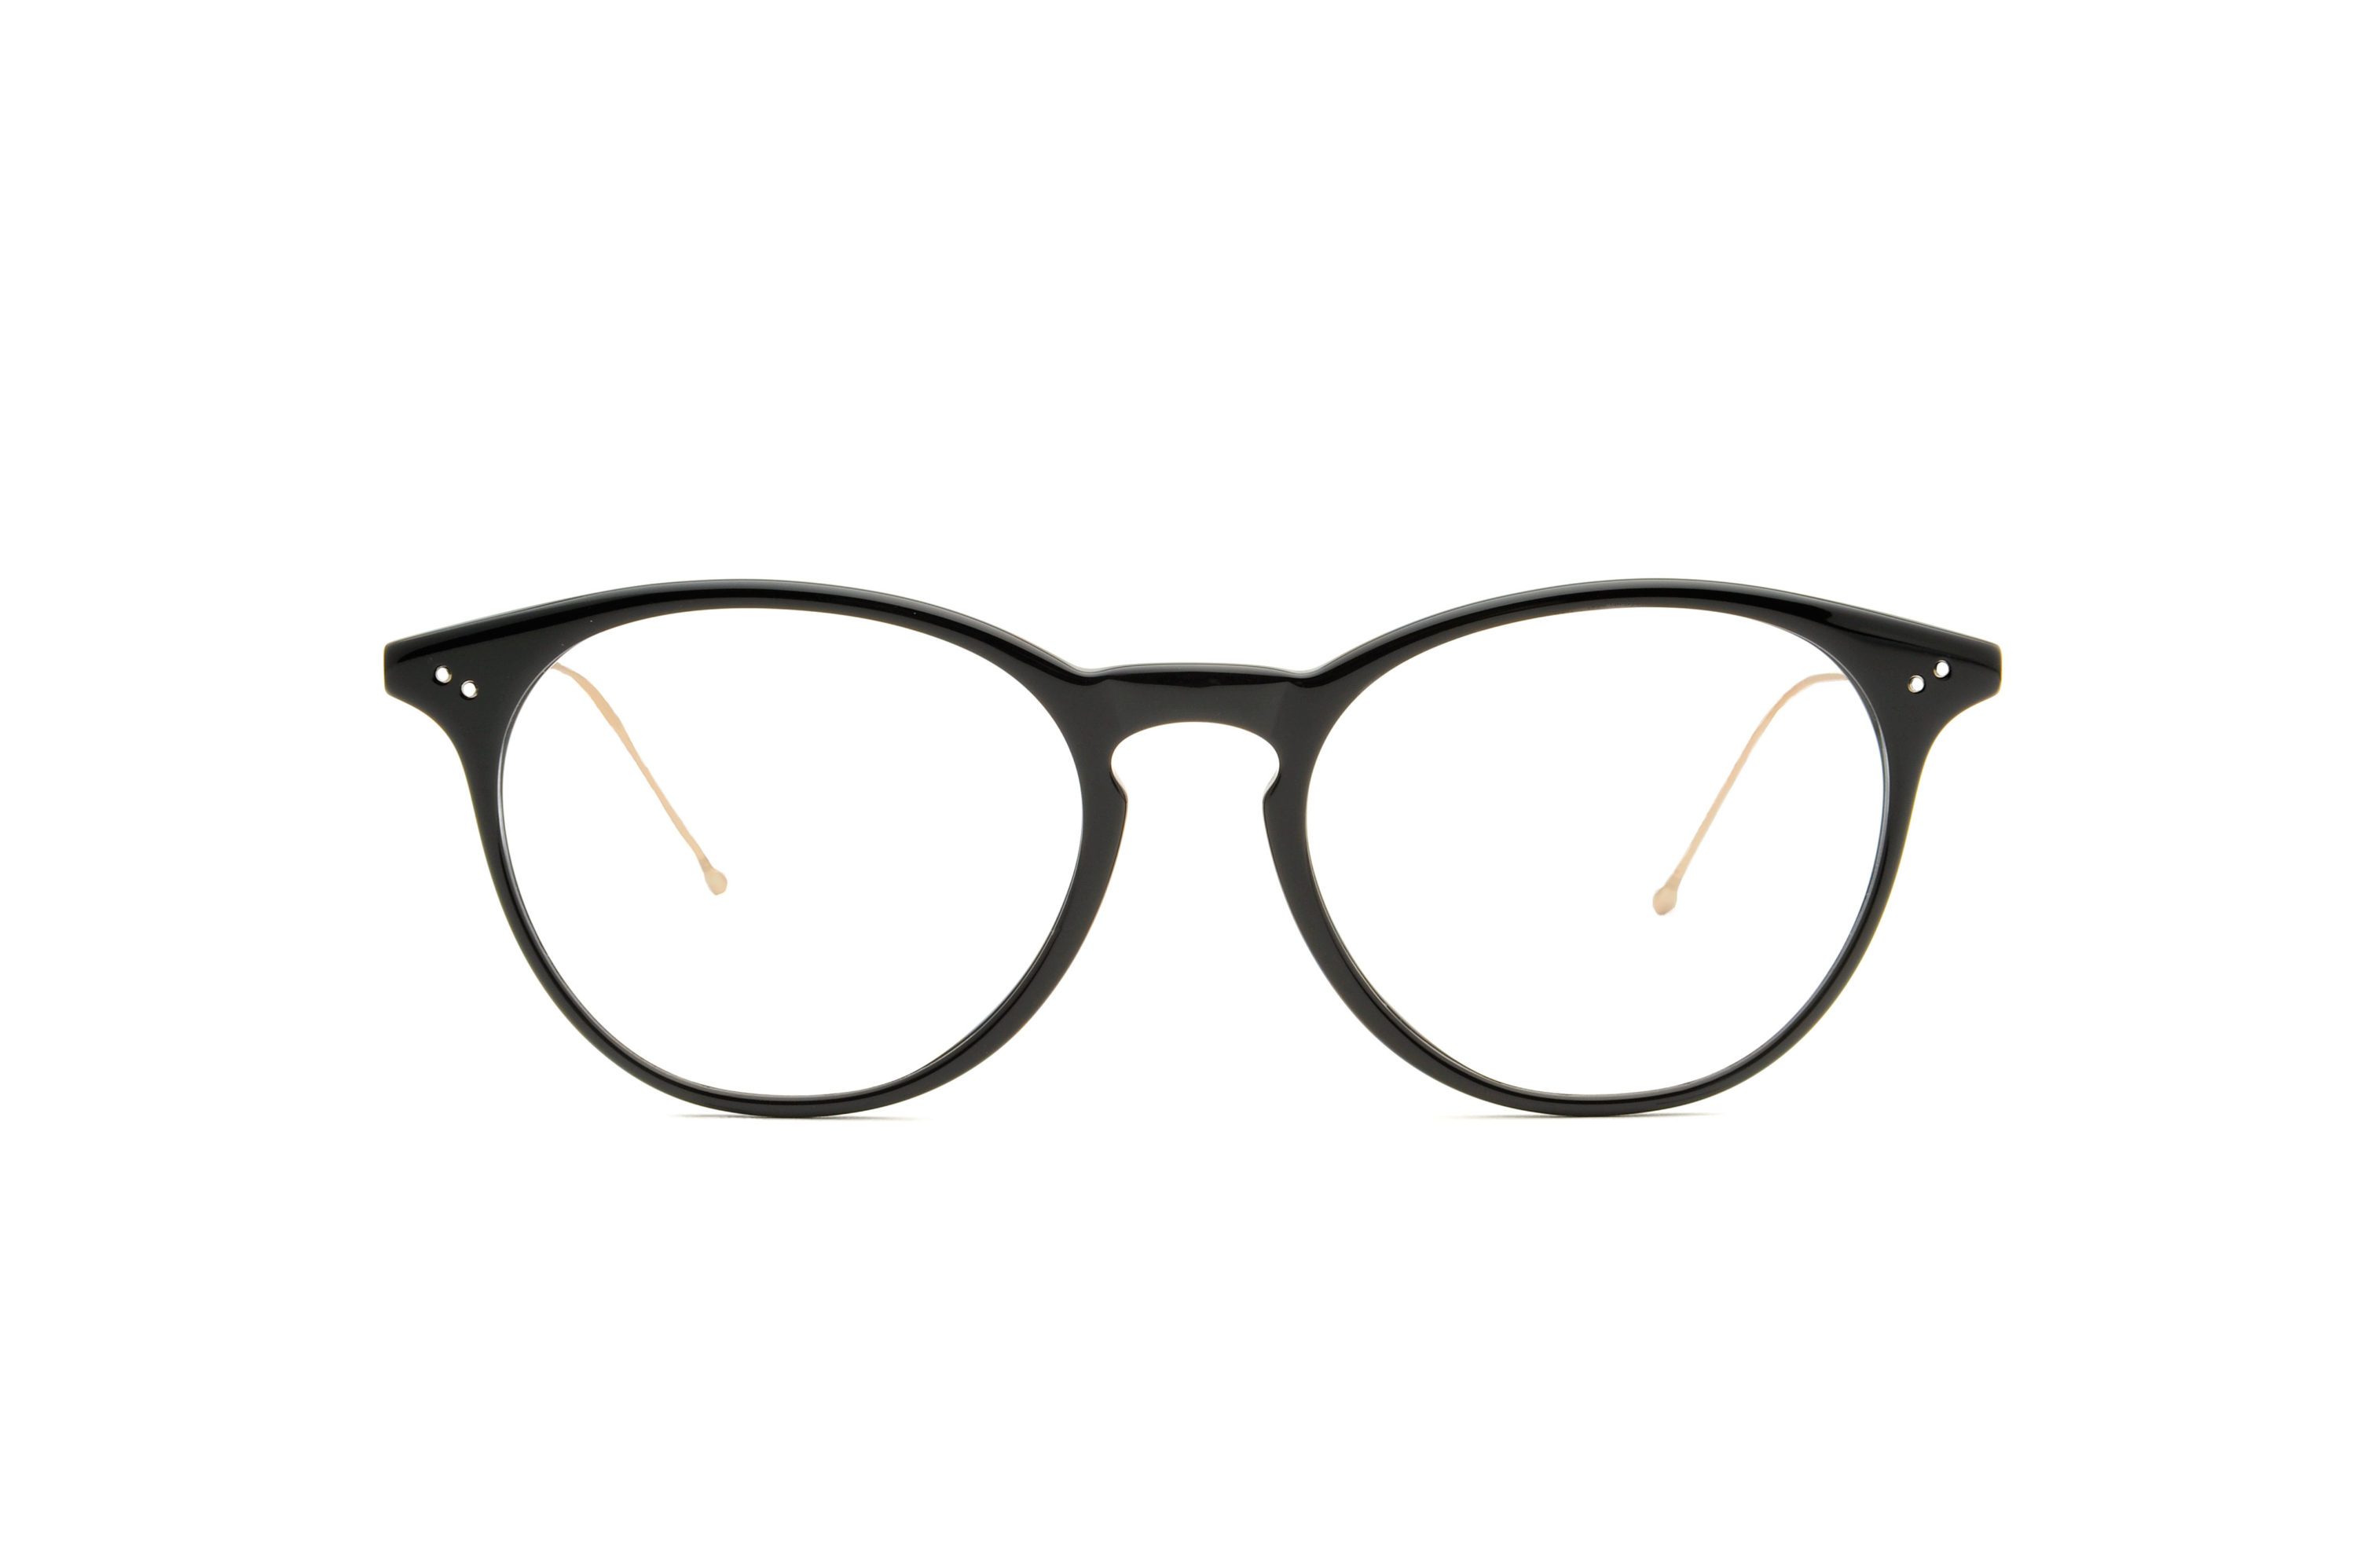 Flow acetate rounded black sunglasses by GIGI Studios